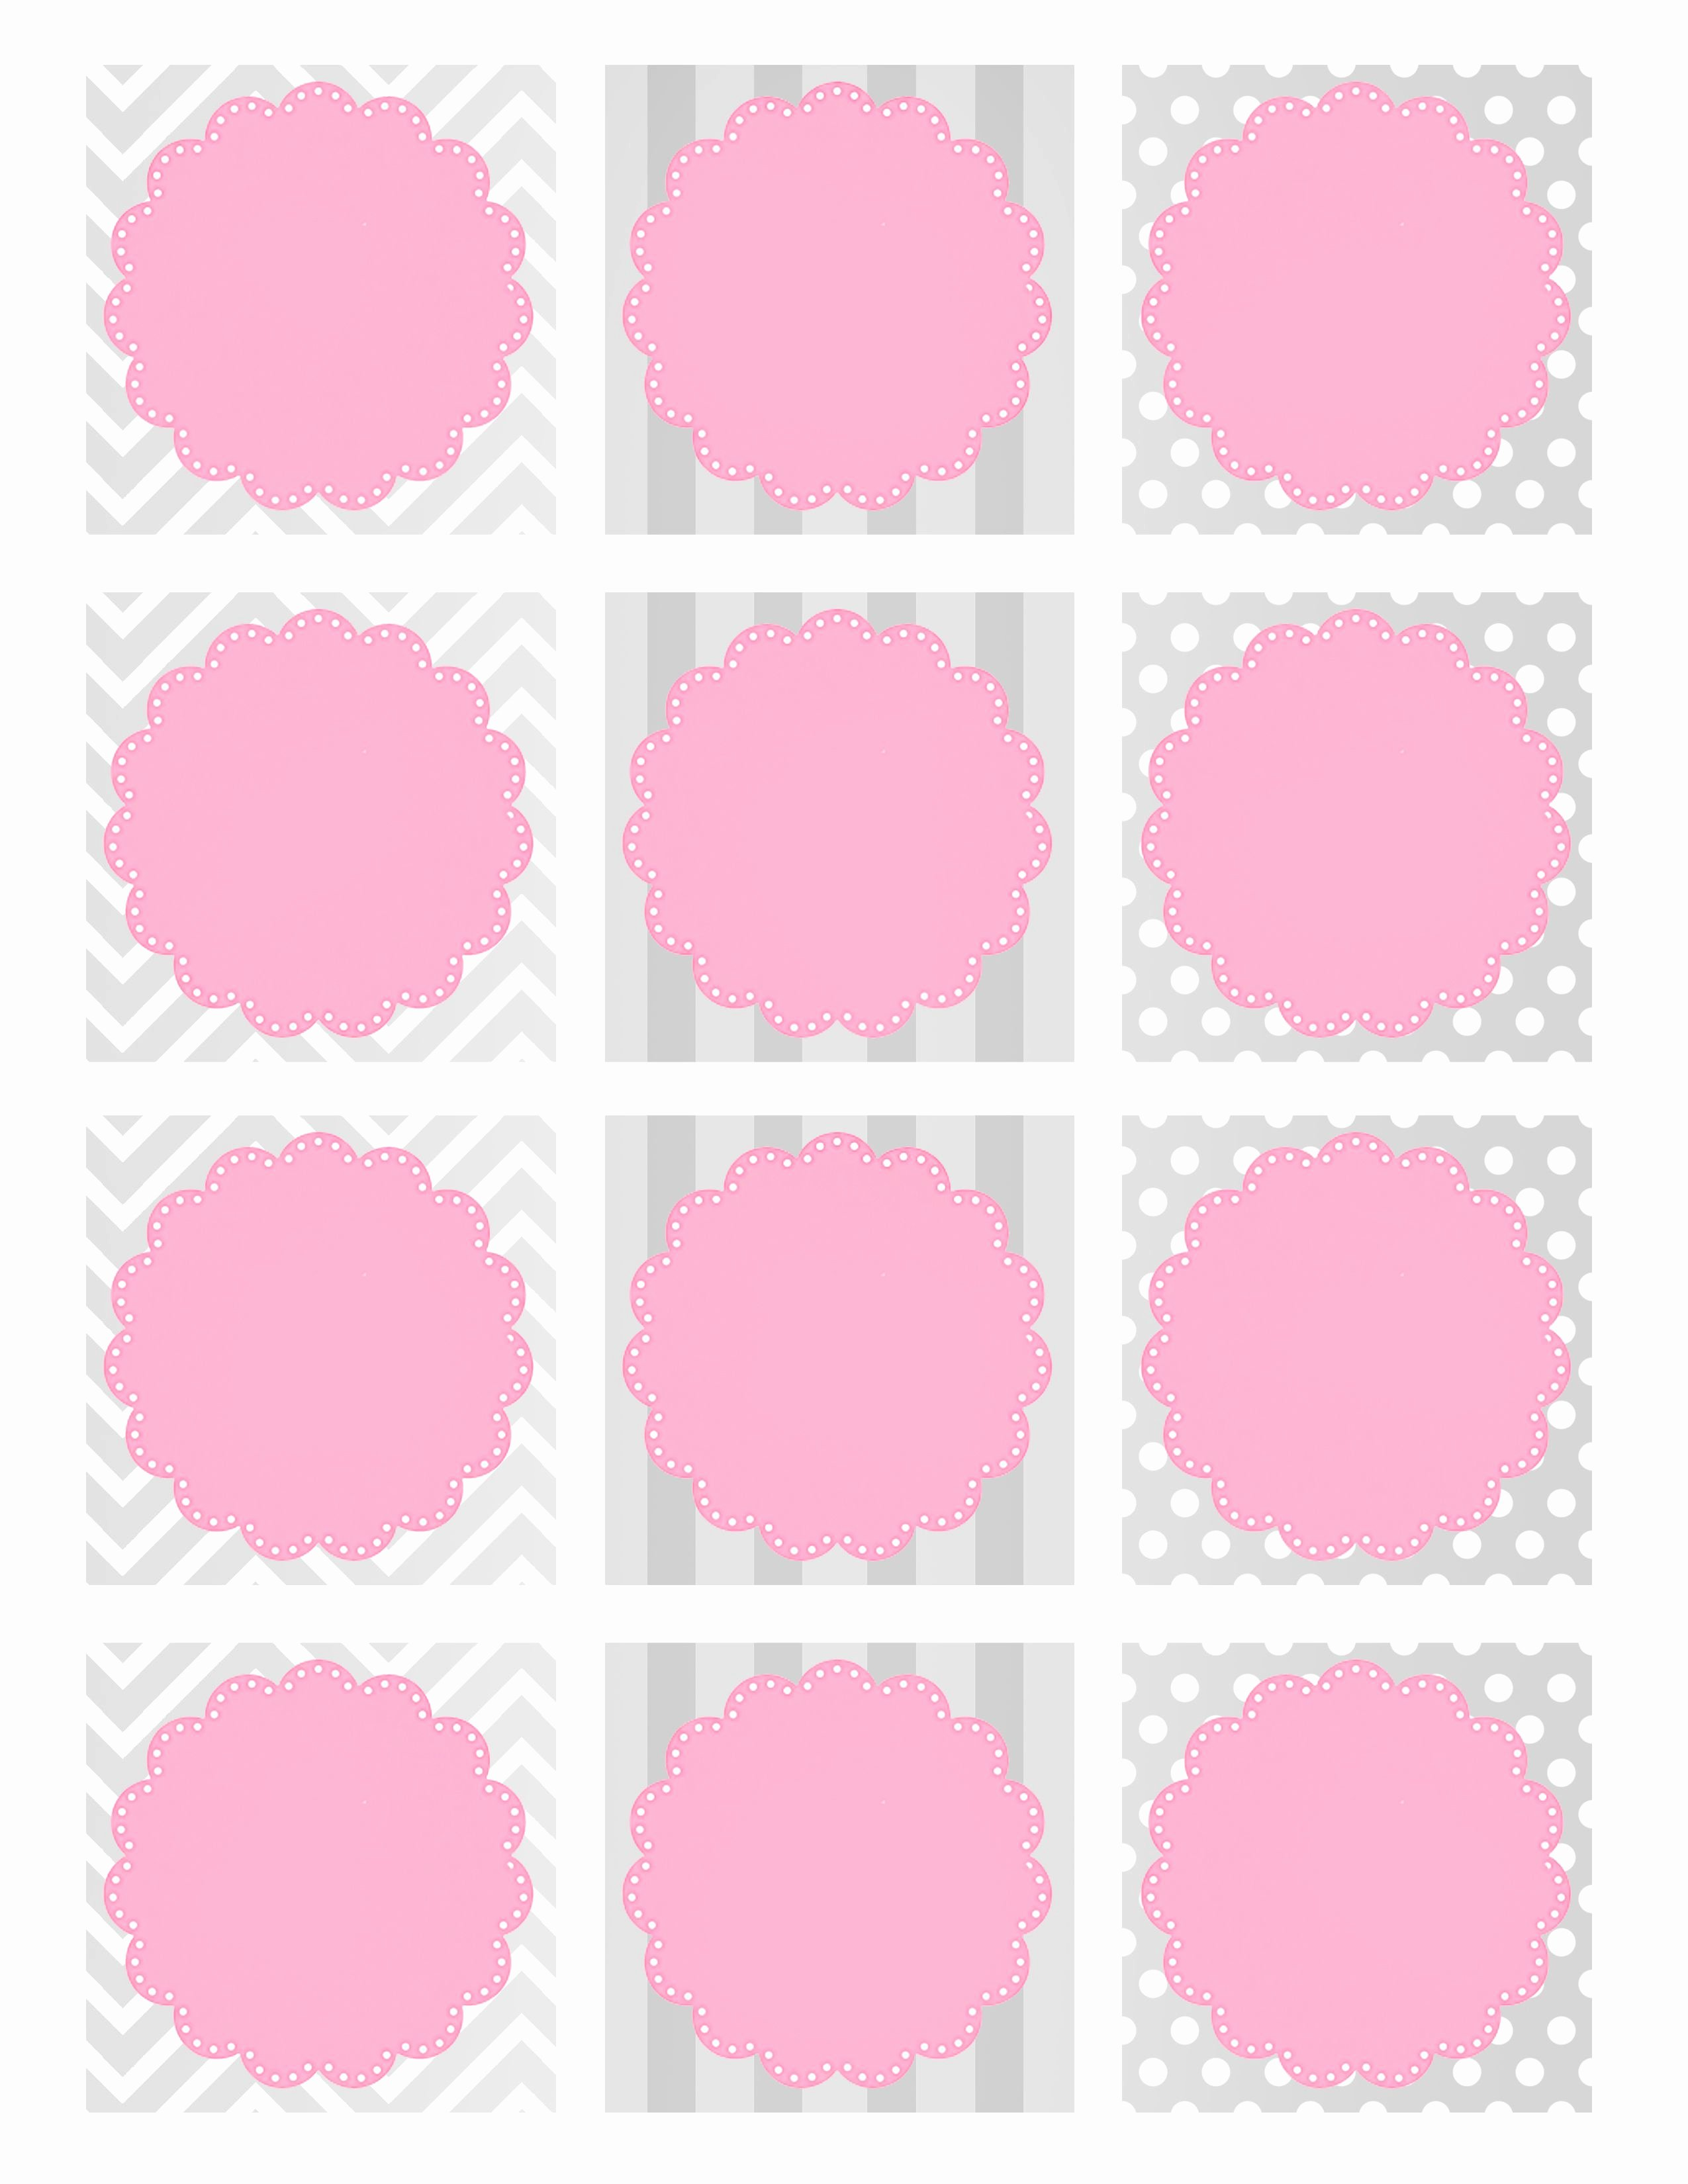 Baby Shower Tags Template Luxury Baby Girl Shower Free Printables Printable Pages